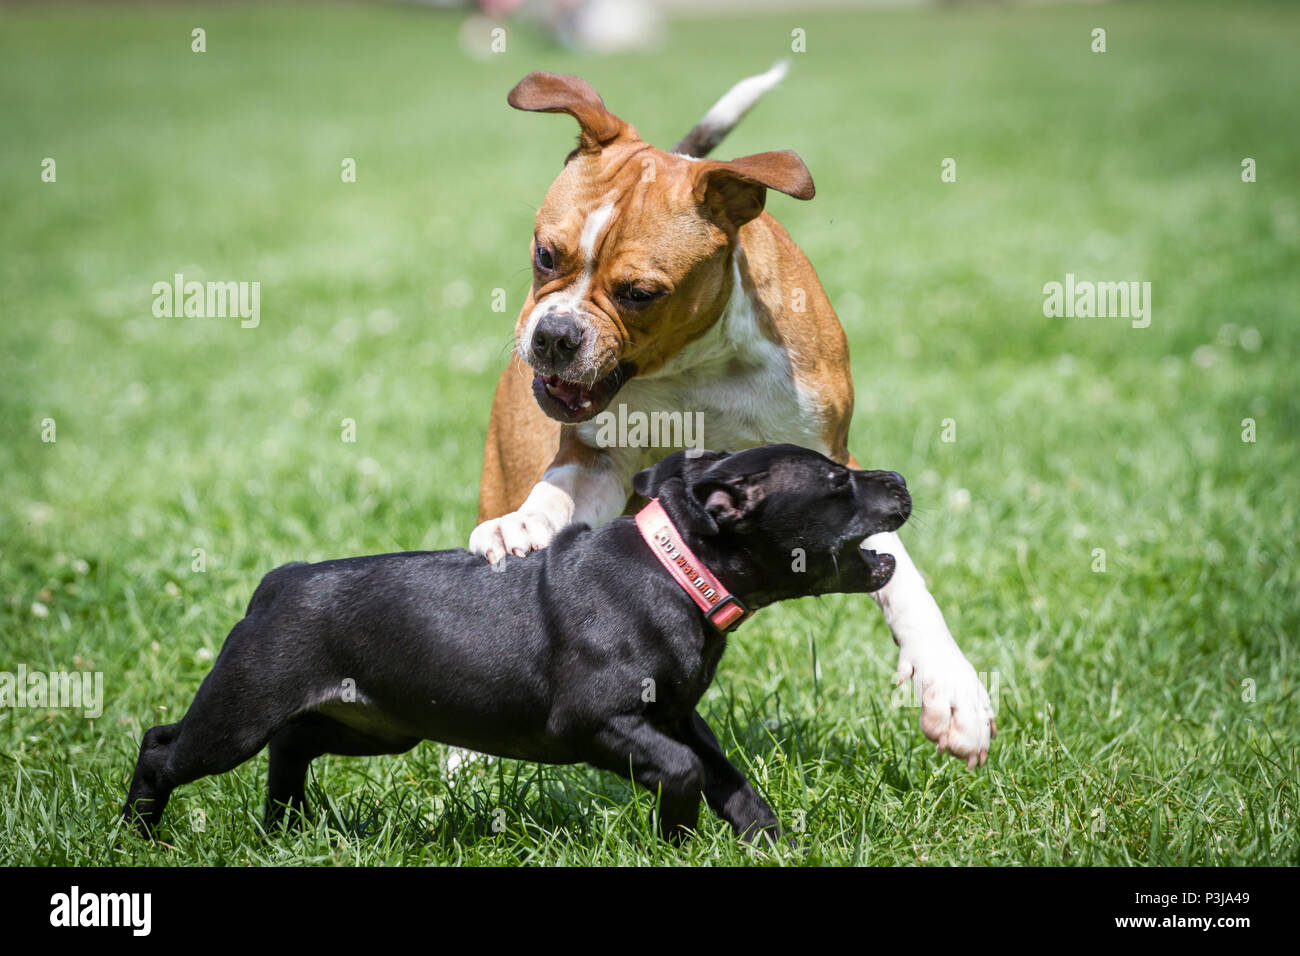 Leavitt Bulldog puppy and Staffordshire Bull Terrier puppy playing together - Stock Image